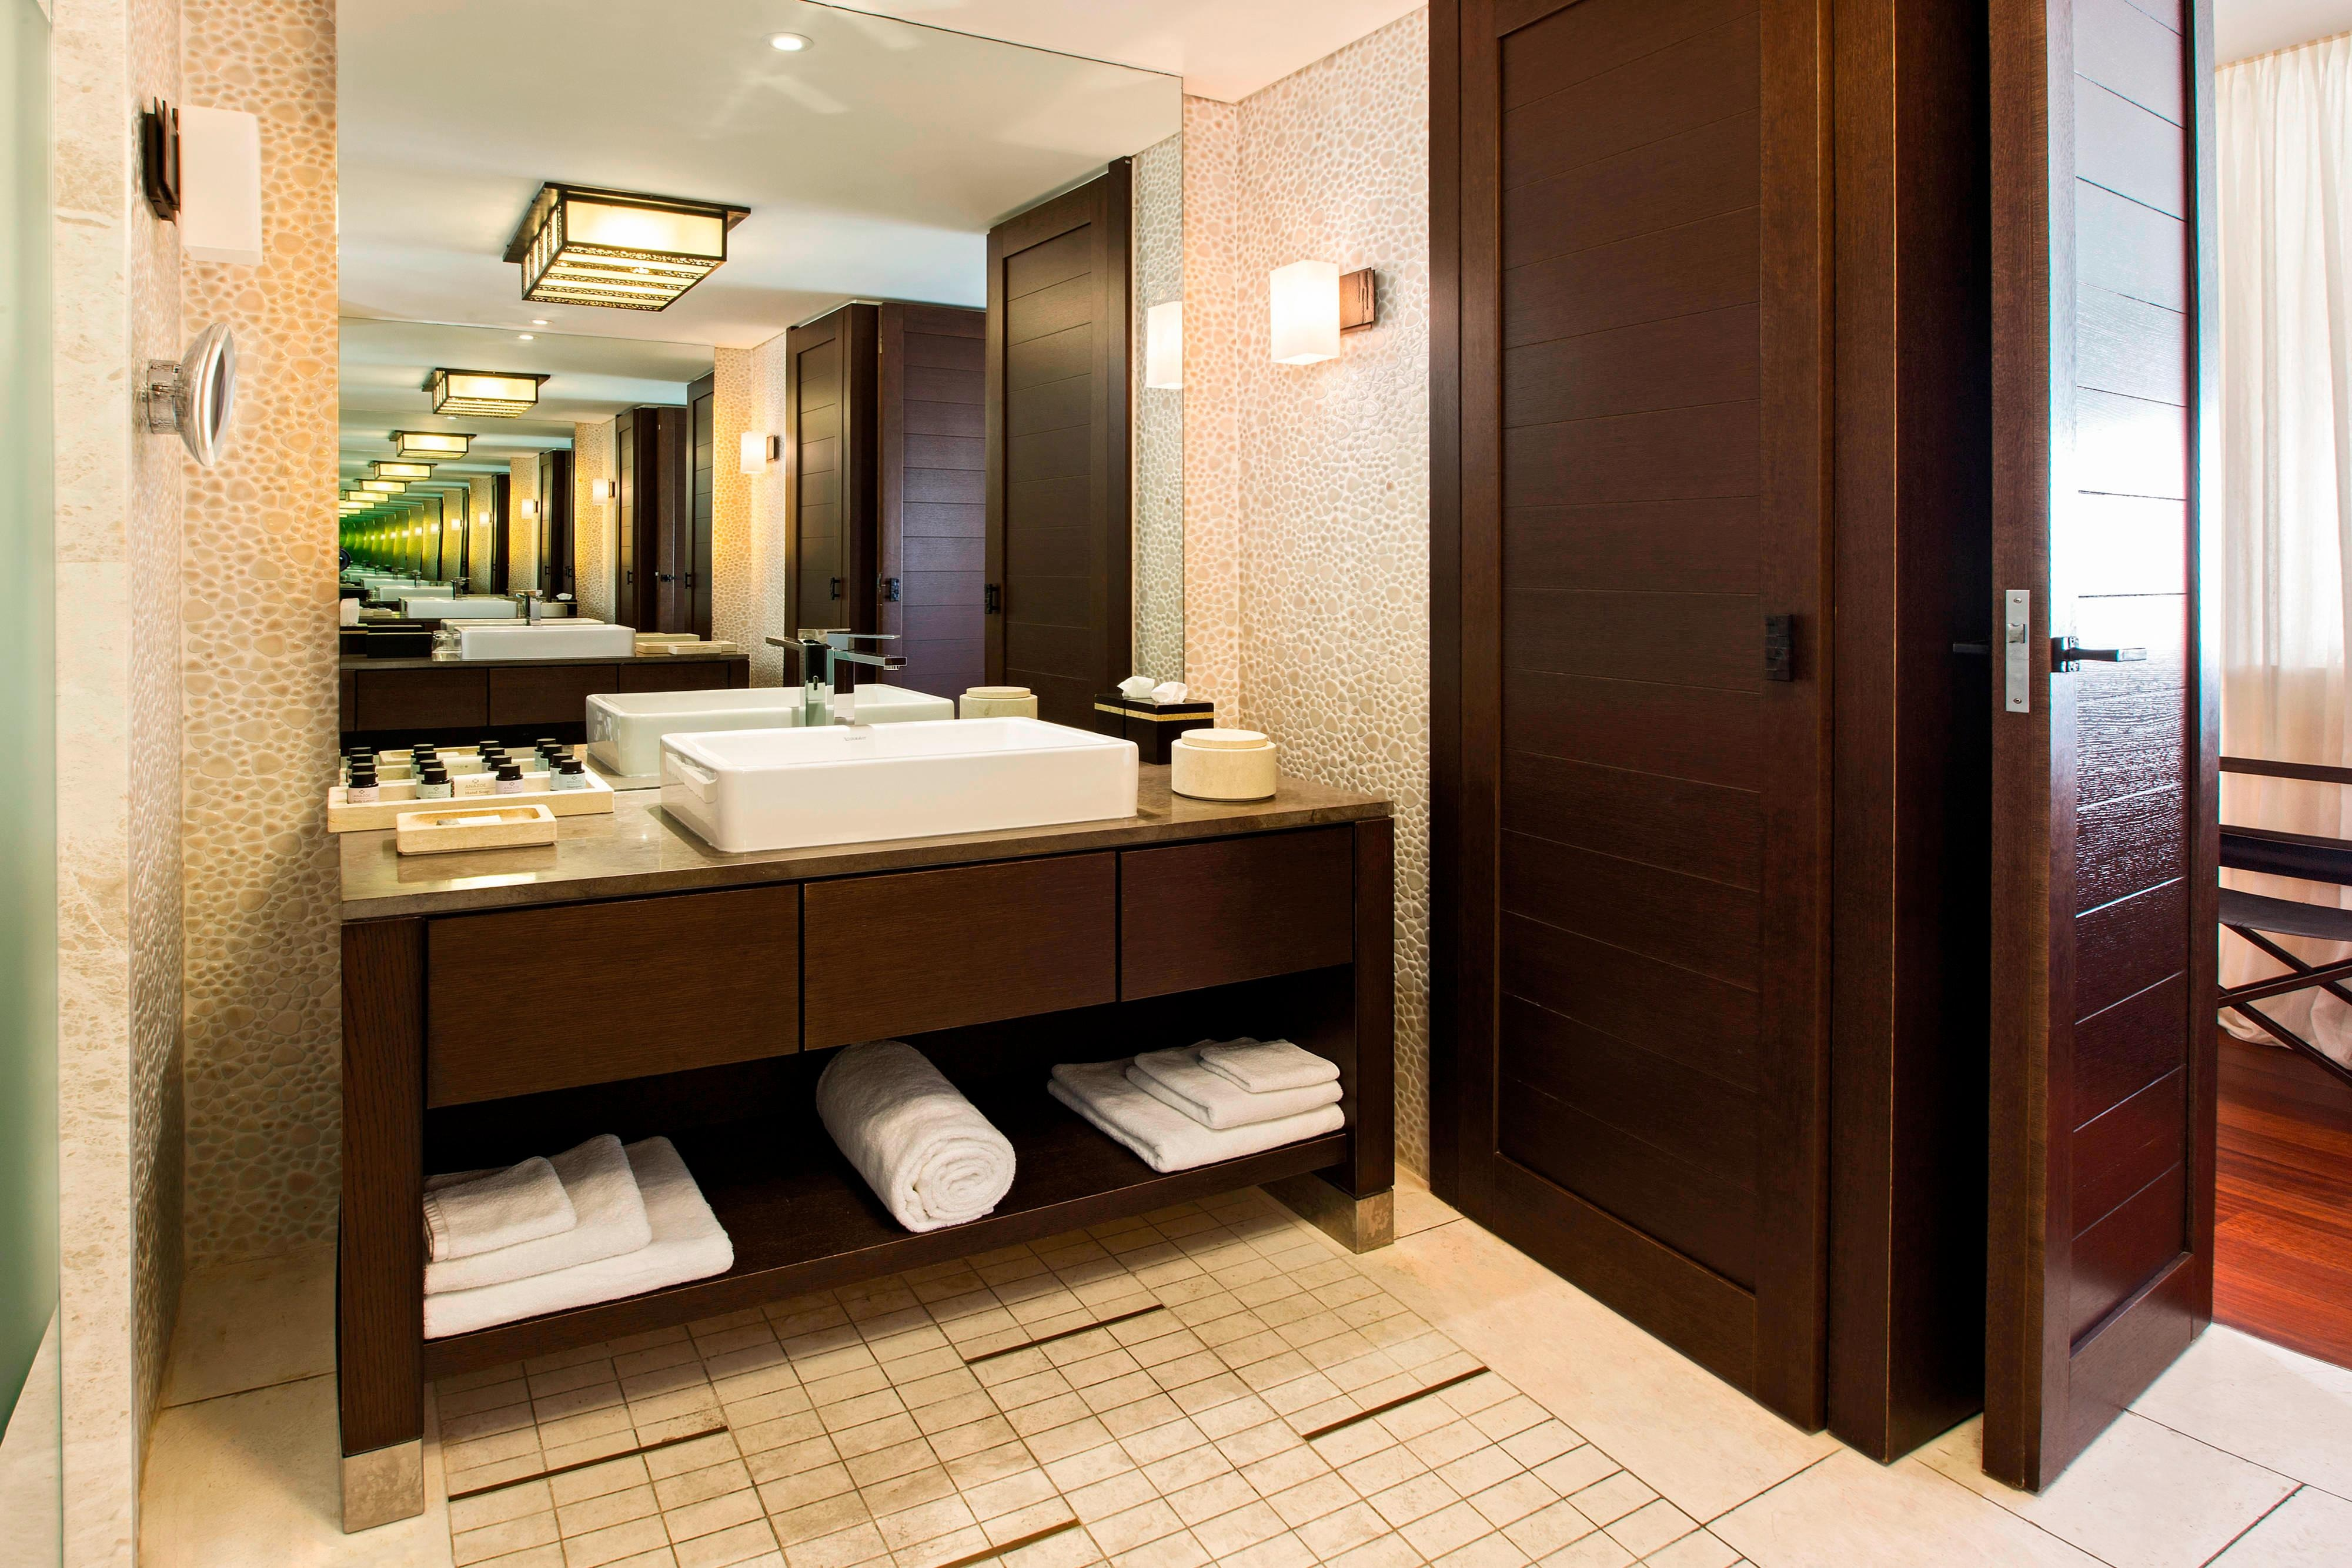 Ionian Exclusive Grand Suite / Ionian Exclusive Grand Infinity Suite - Bathroom